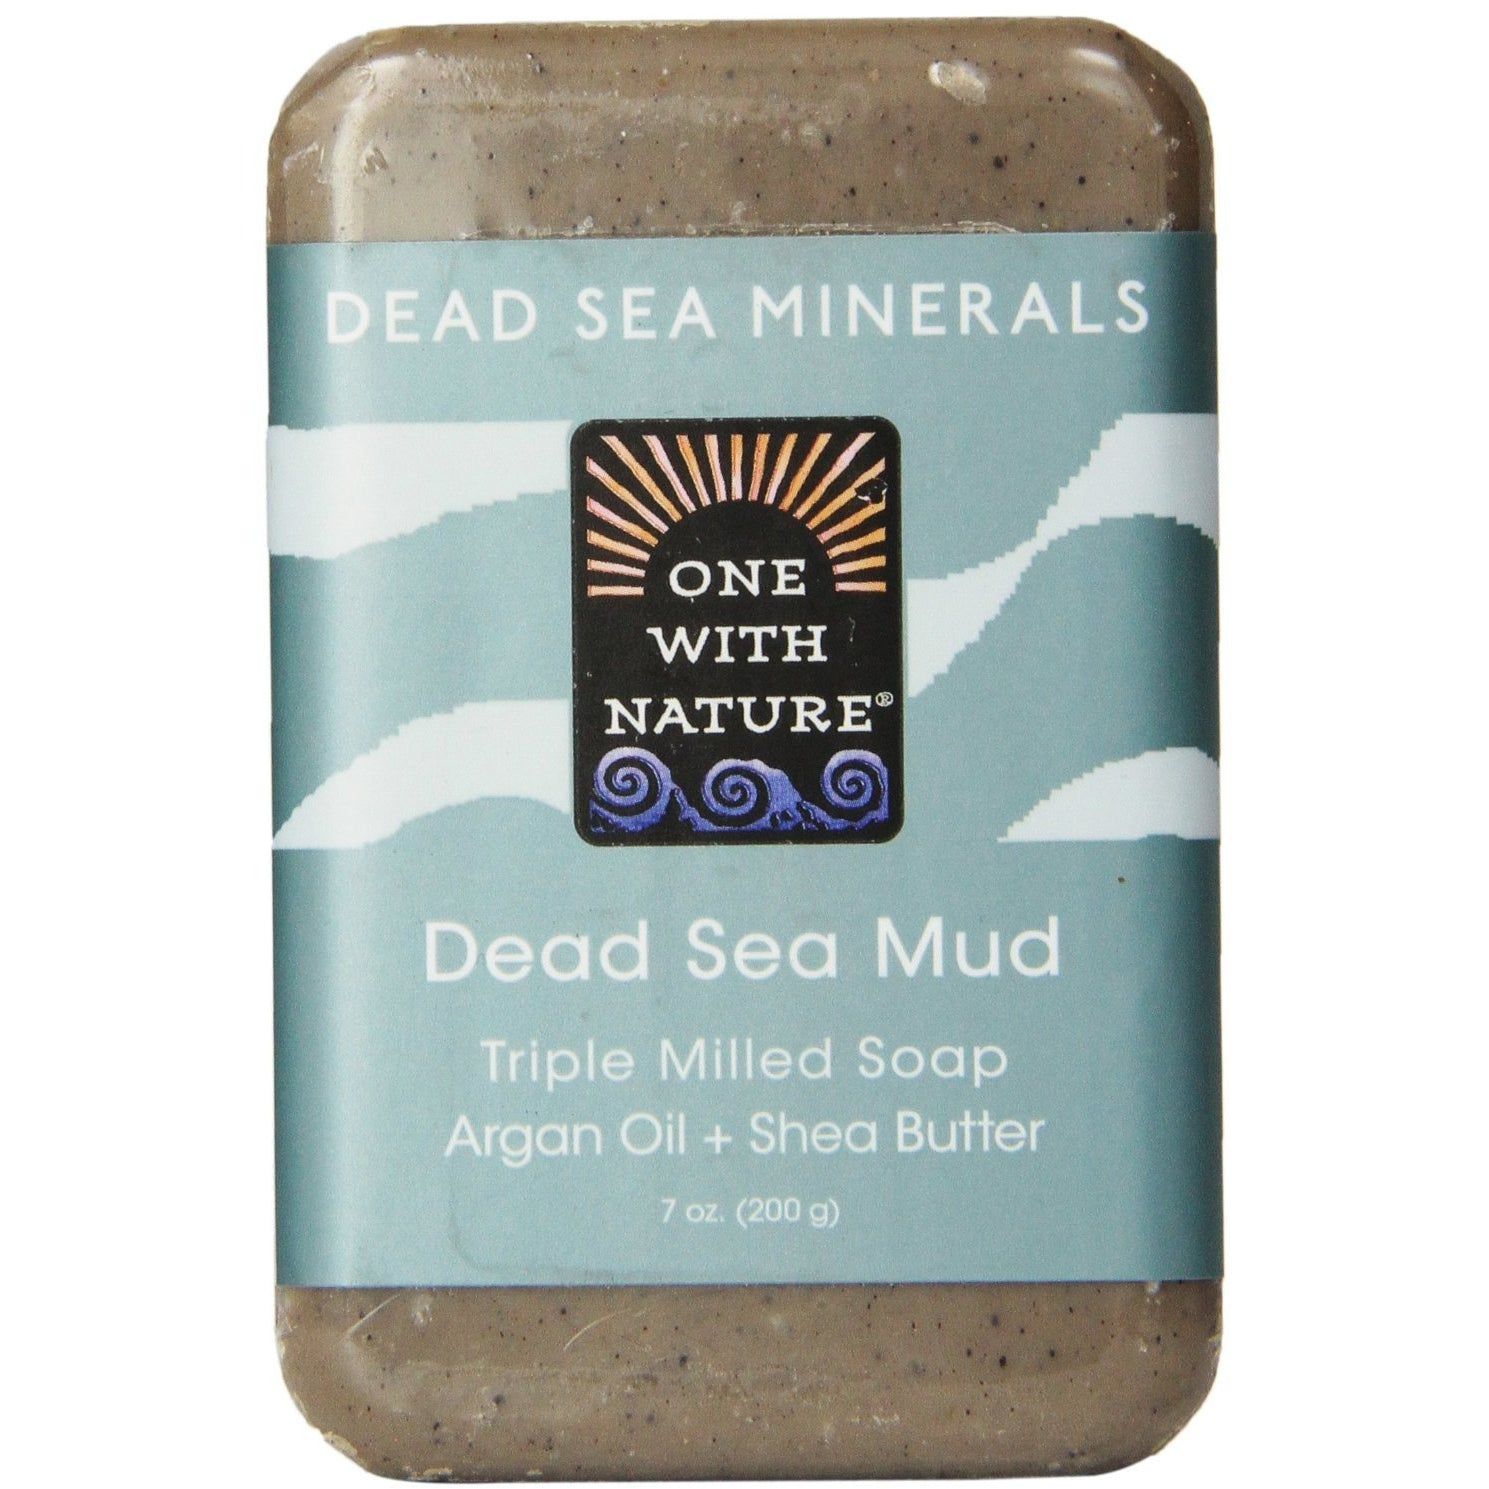 One With Nature Dead Sea Mud Dead Sea Minerals Soap, 7 Ounce Ba